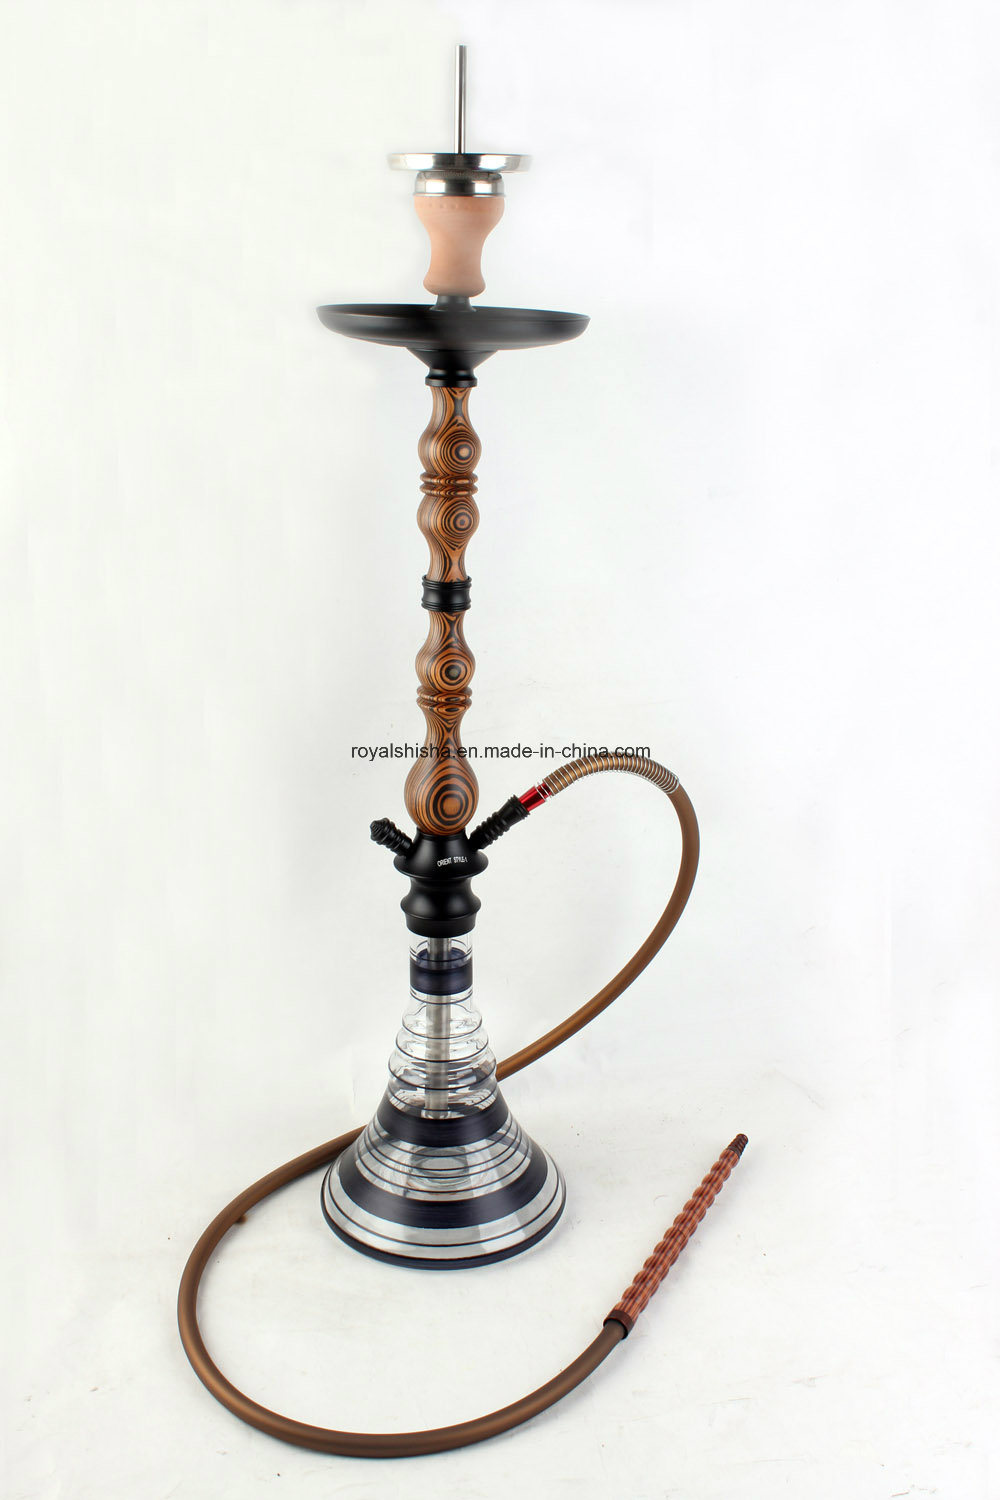 Wholesale Hookahs in China Royal Shisha New Batia Wood Stem Shisha